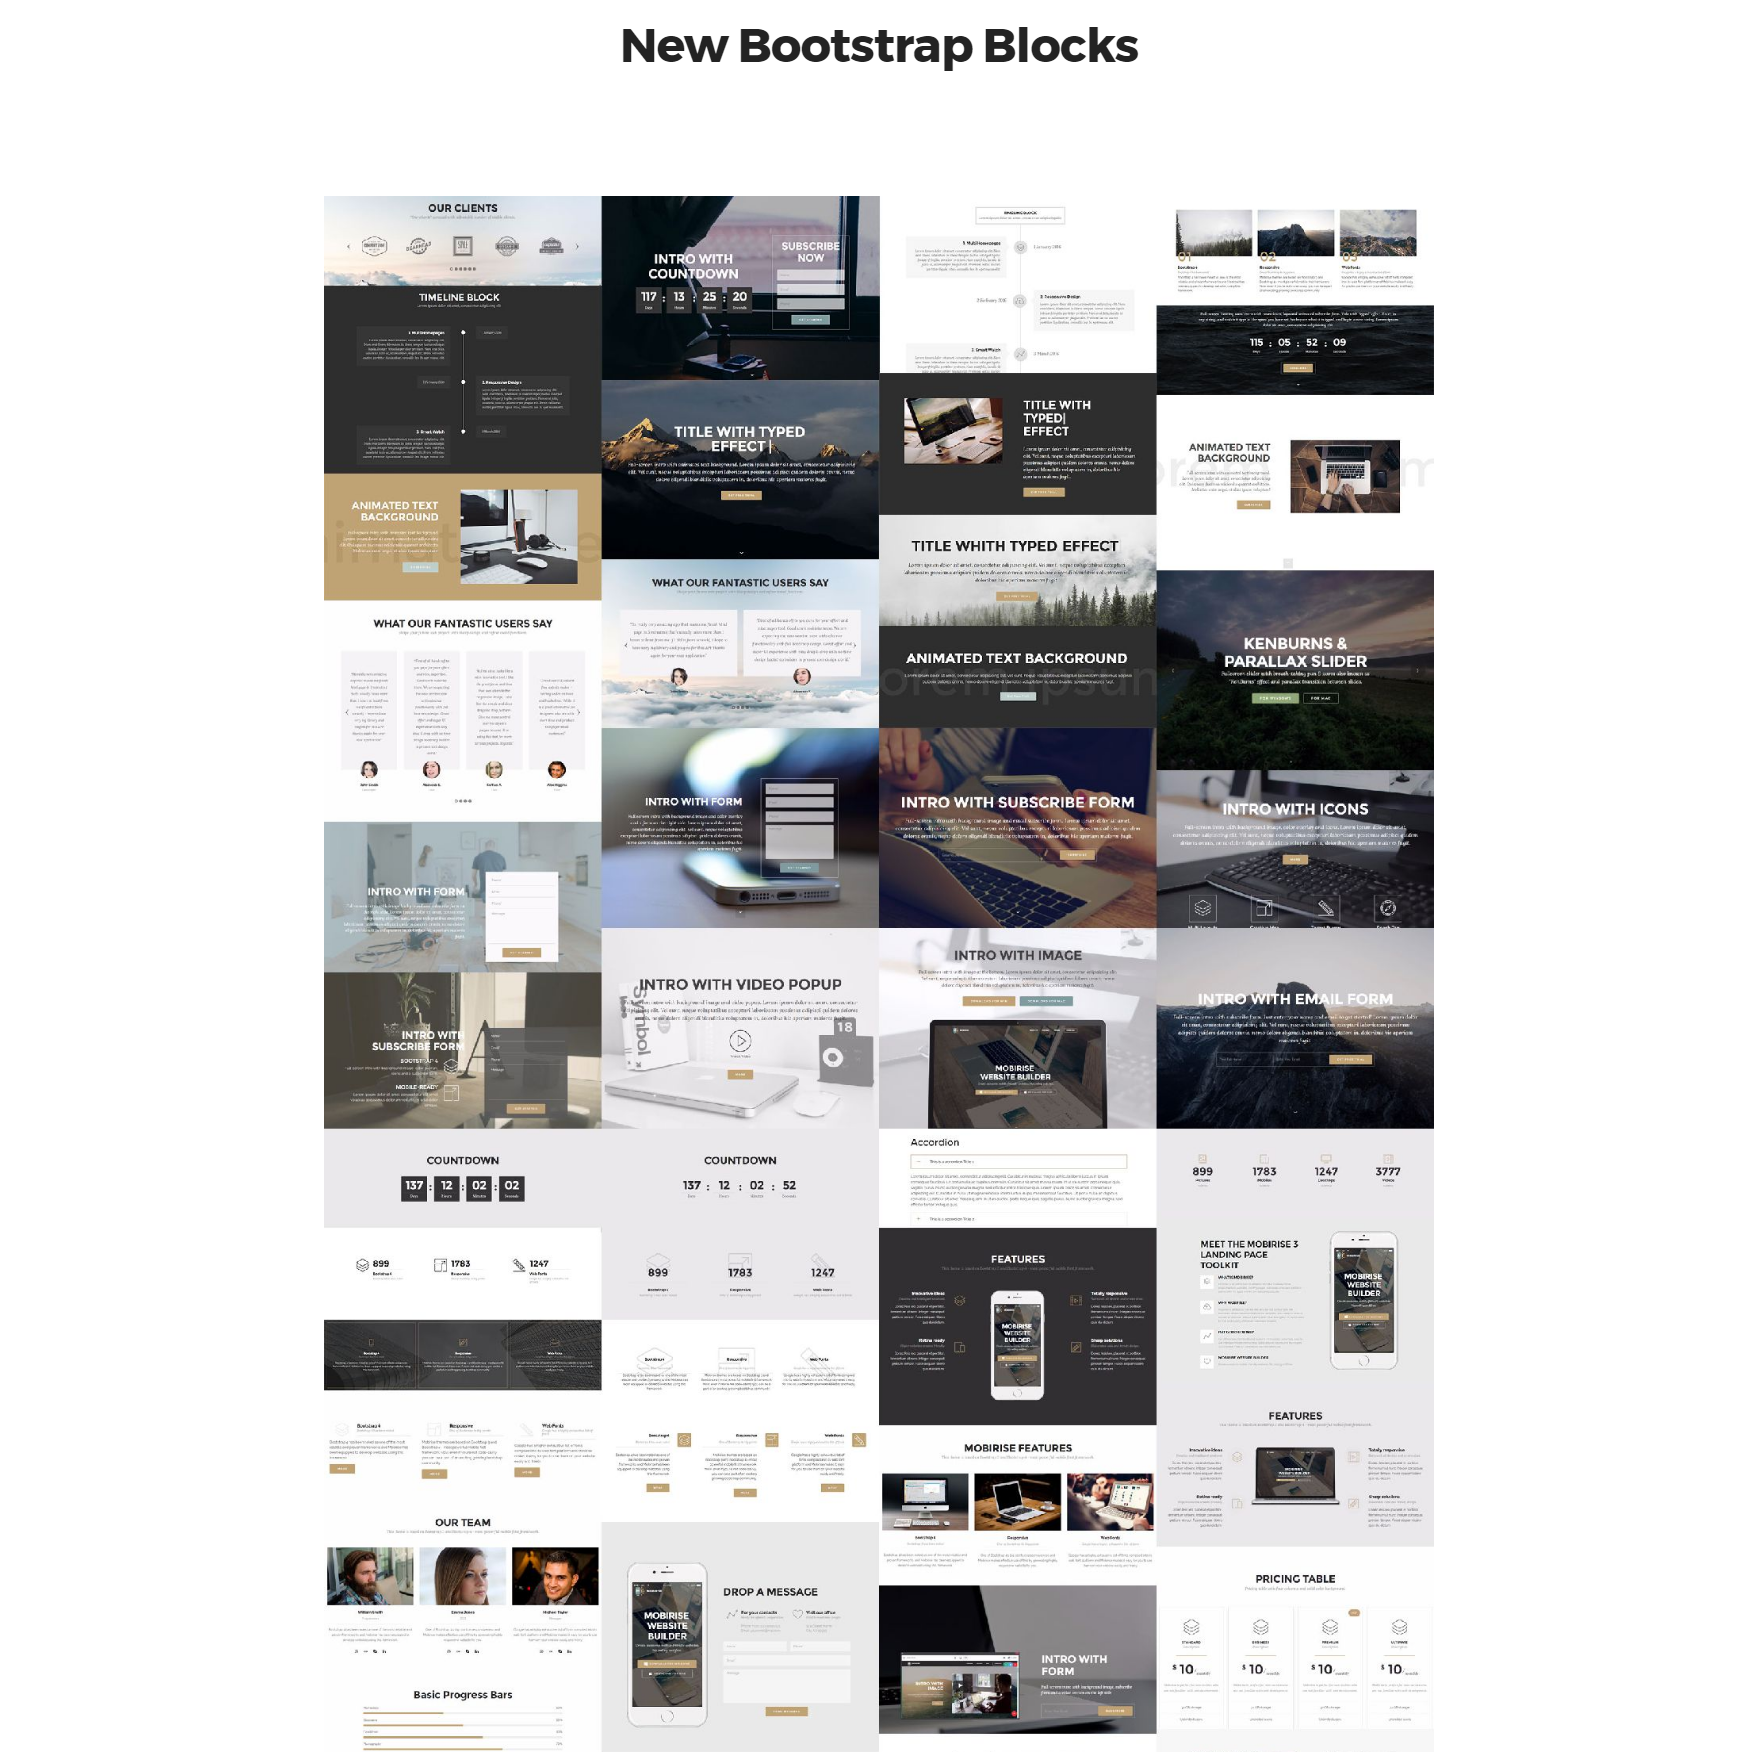 HTML Bootstrap 4 mobile-friendly blocks Themes